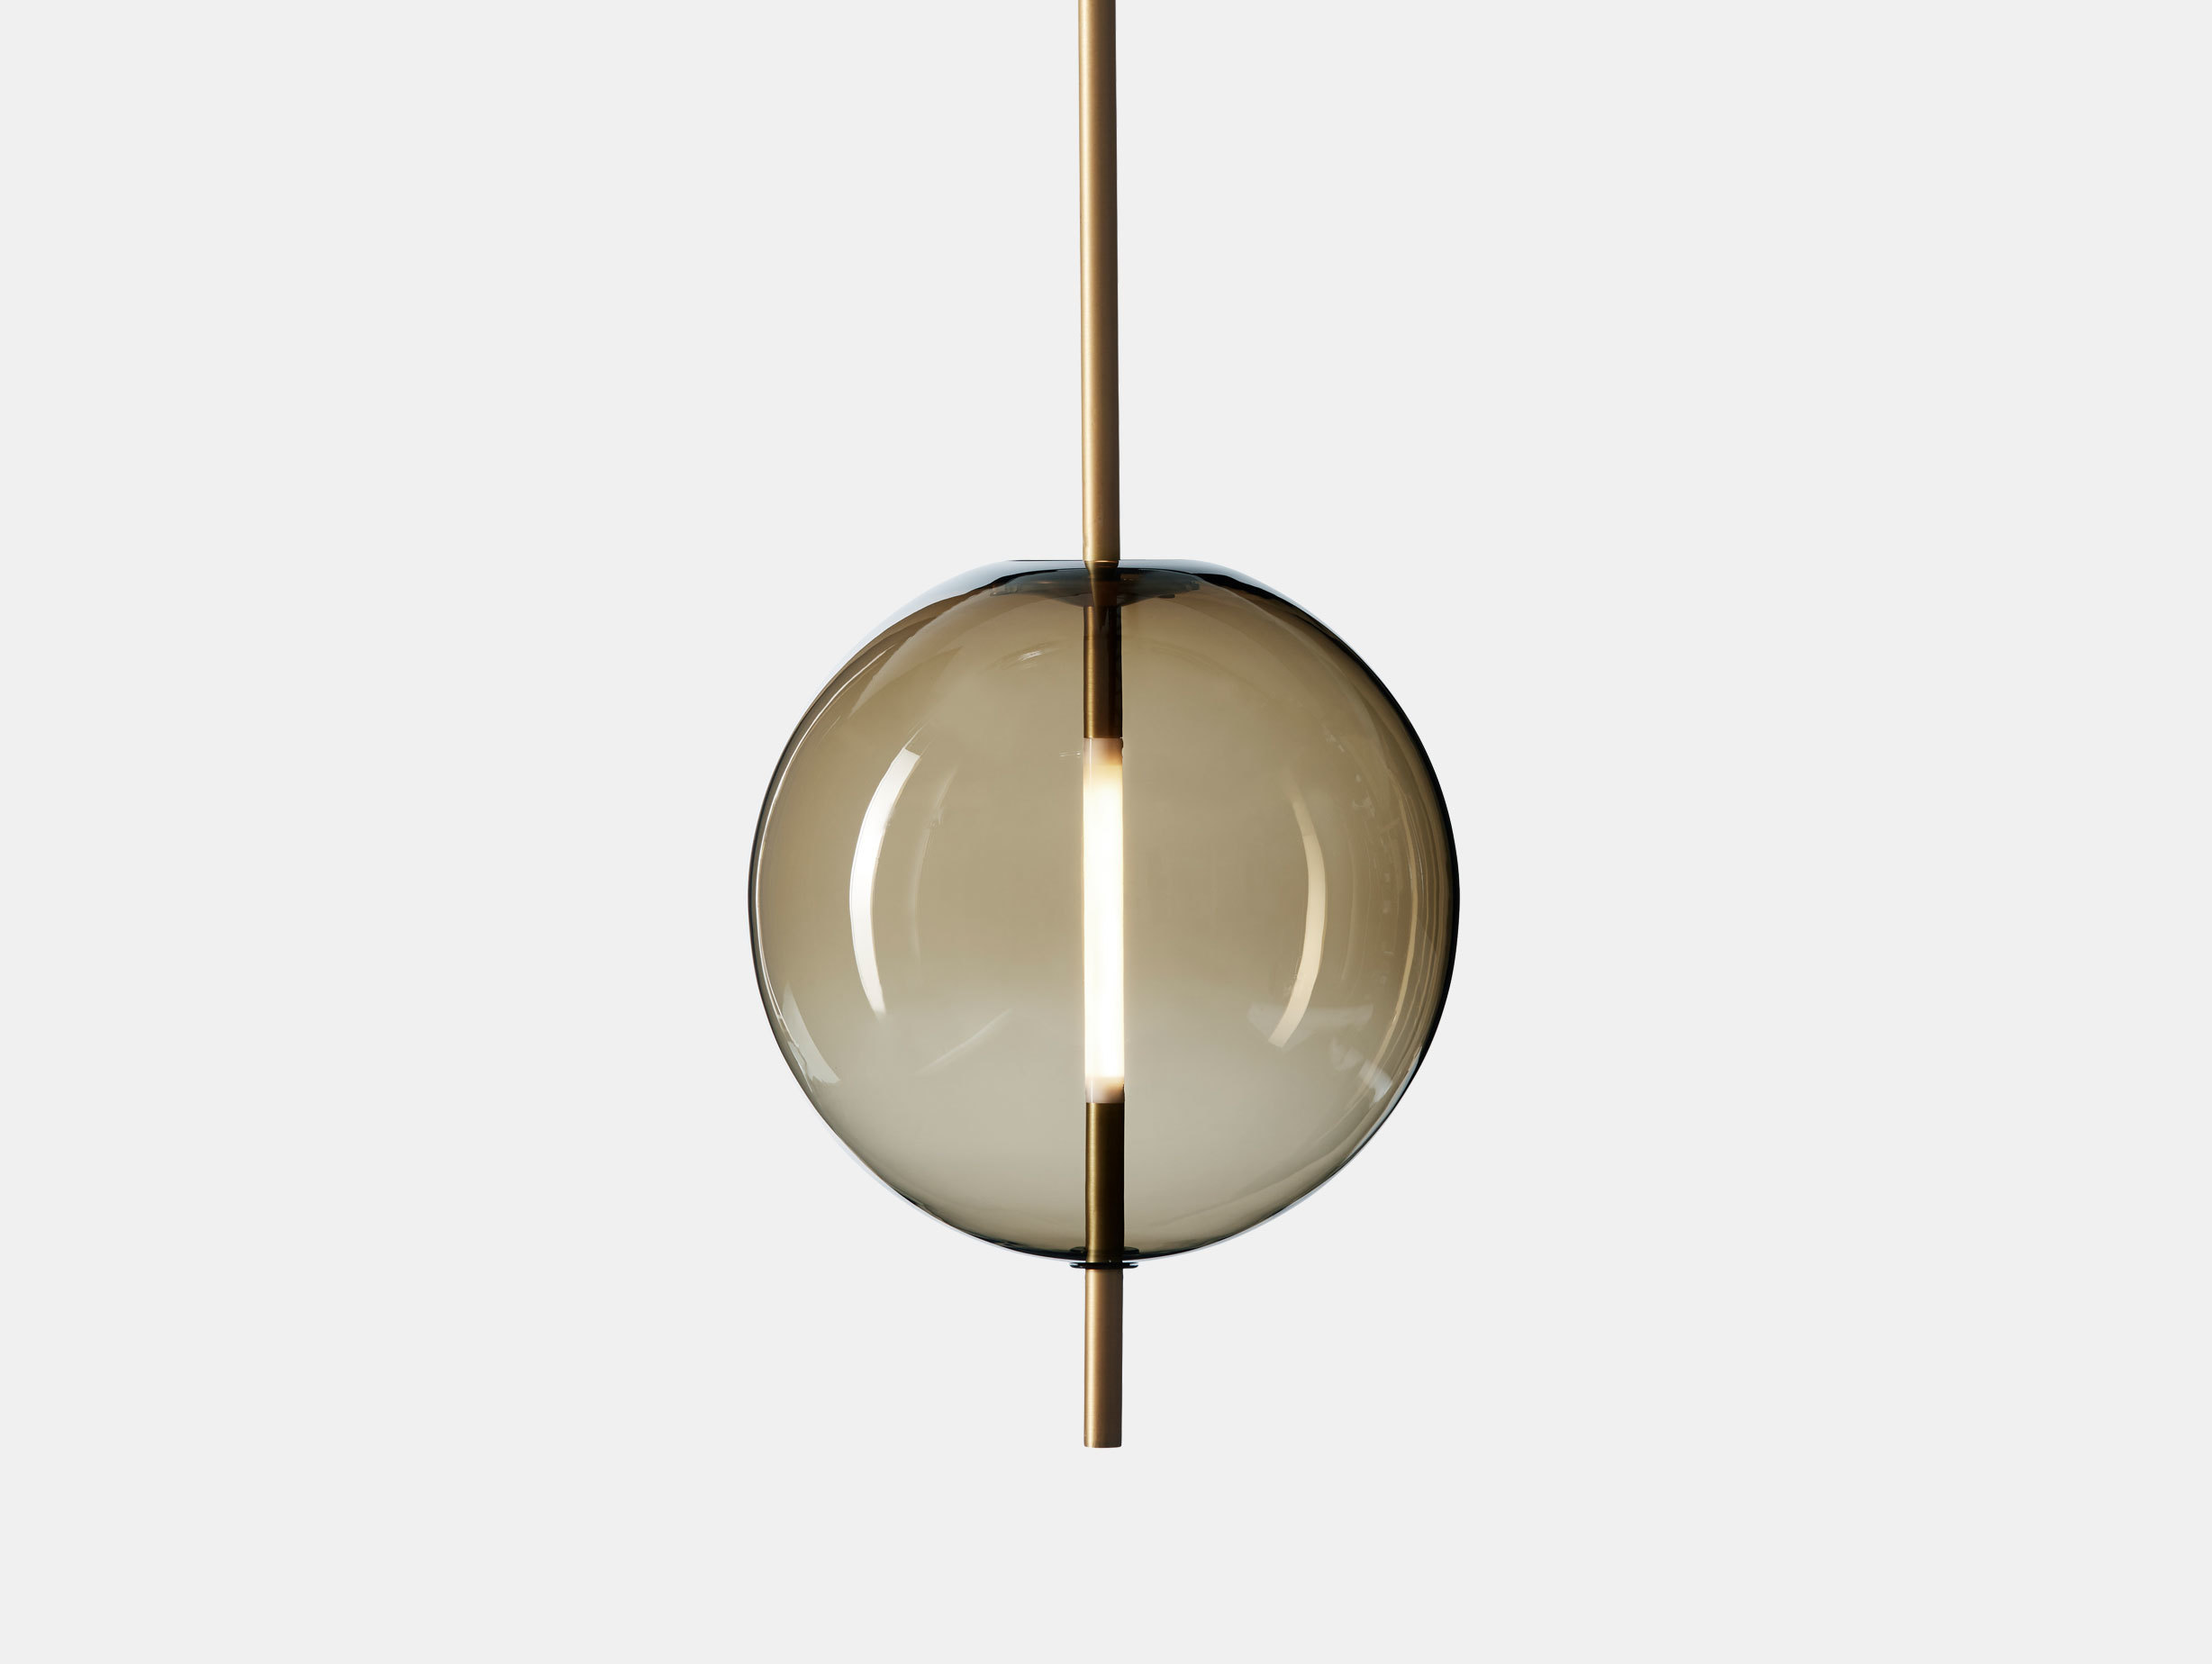 Pholc Kandinsky 30 Pendant Light Smoked Brown Broberg Ridderstrale